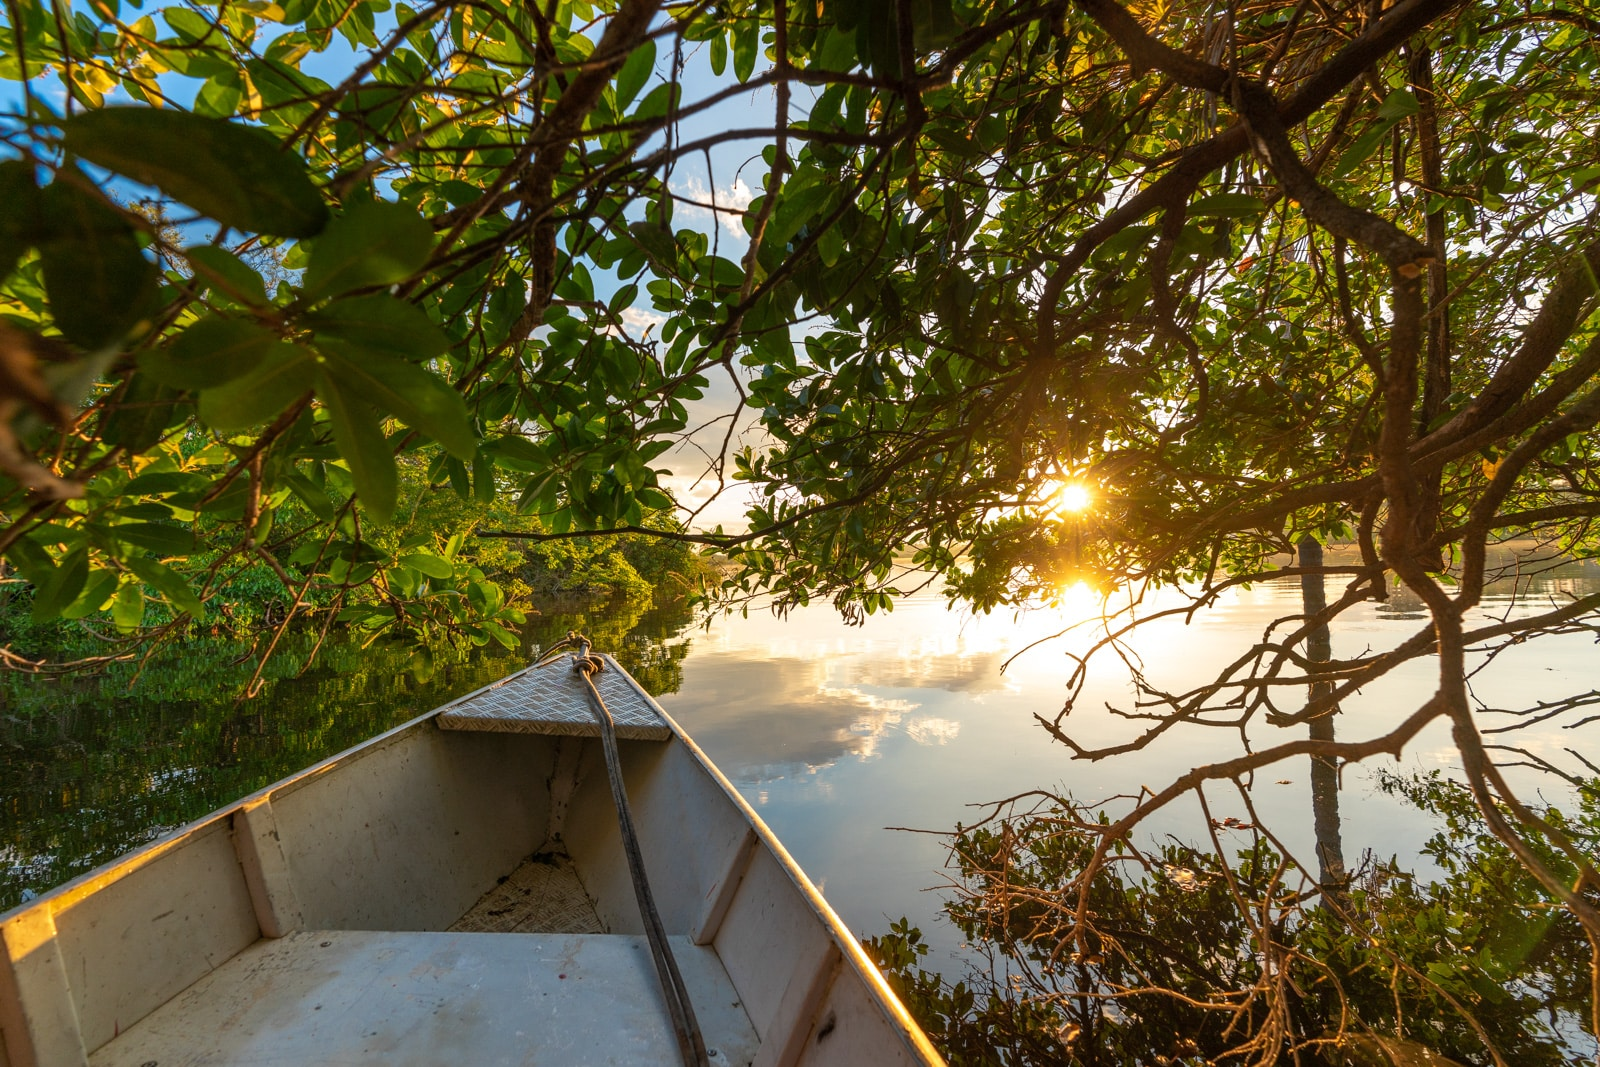 OneSight's mobile eye care clinic in the Brazilian Amazon - Boating on the Amazon River at sunrise - Lost With Purpose travel blog